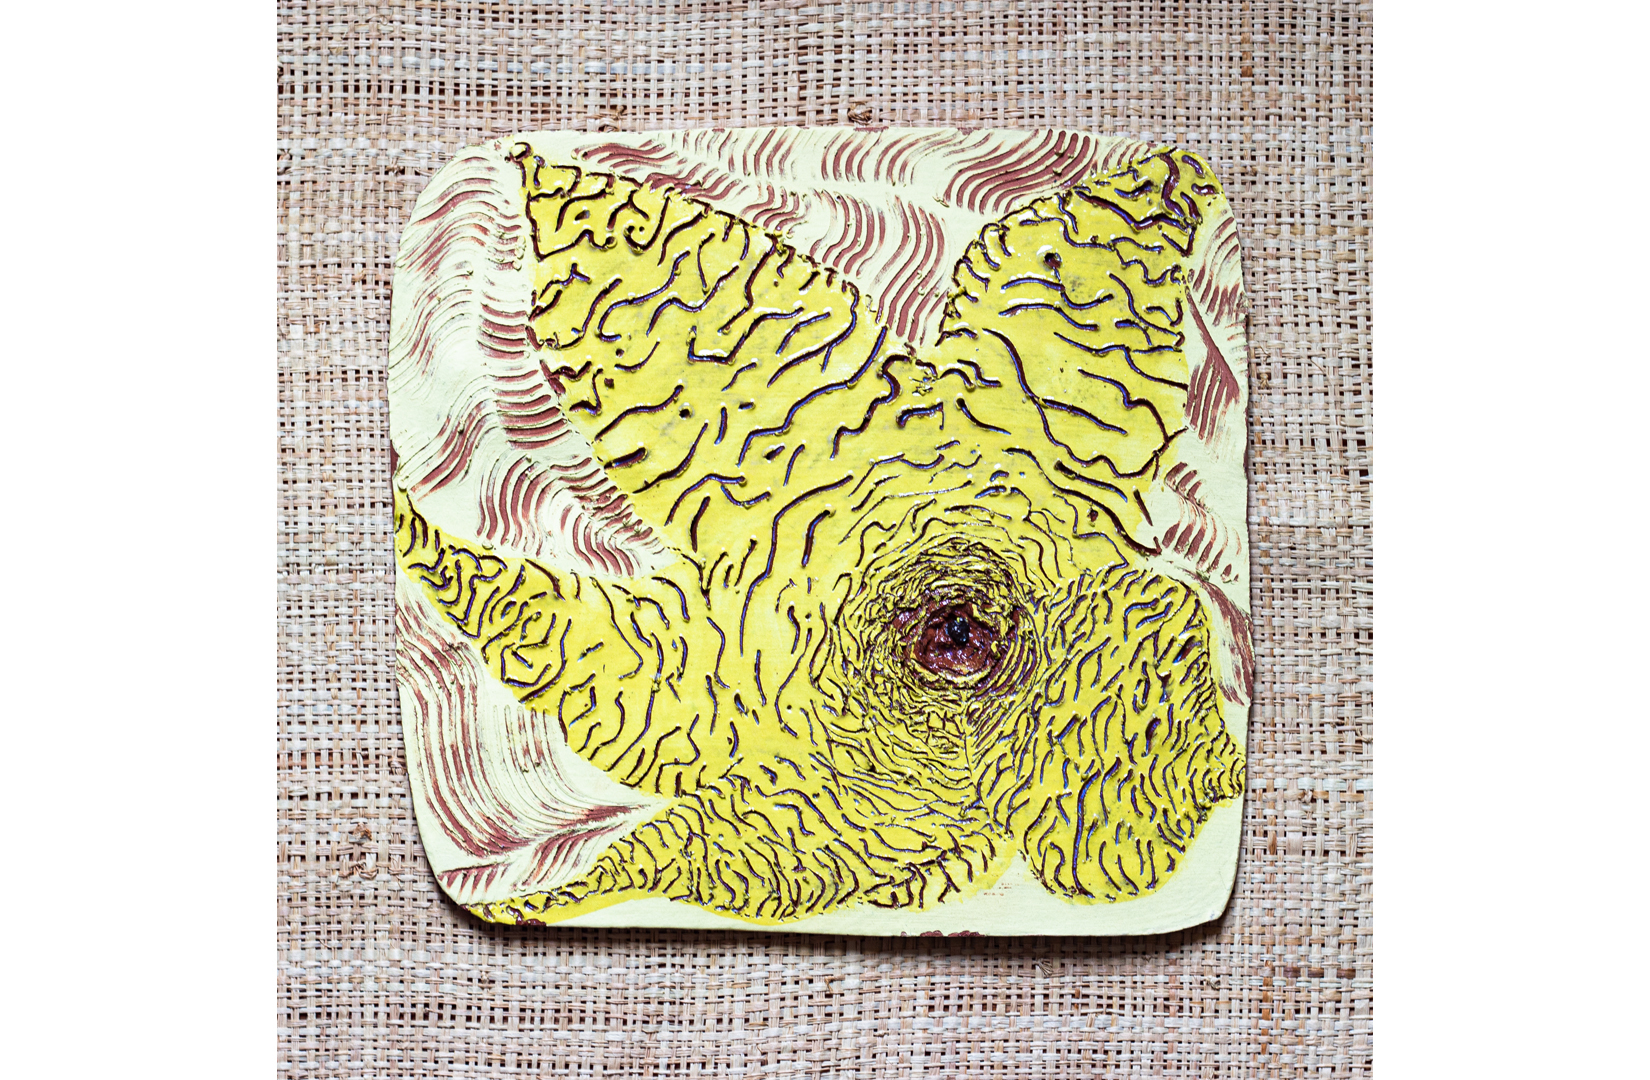 Ceramic, Clay, Glaze, Plate, yellow